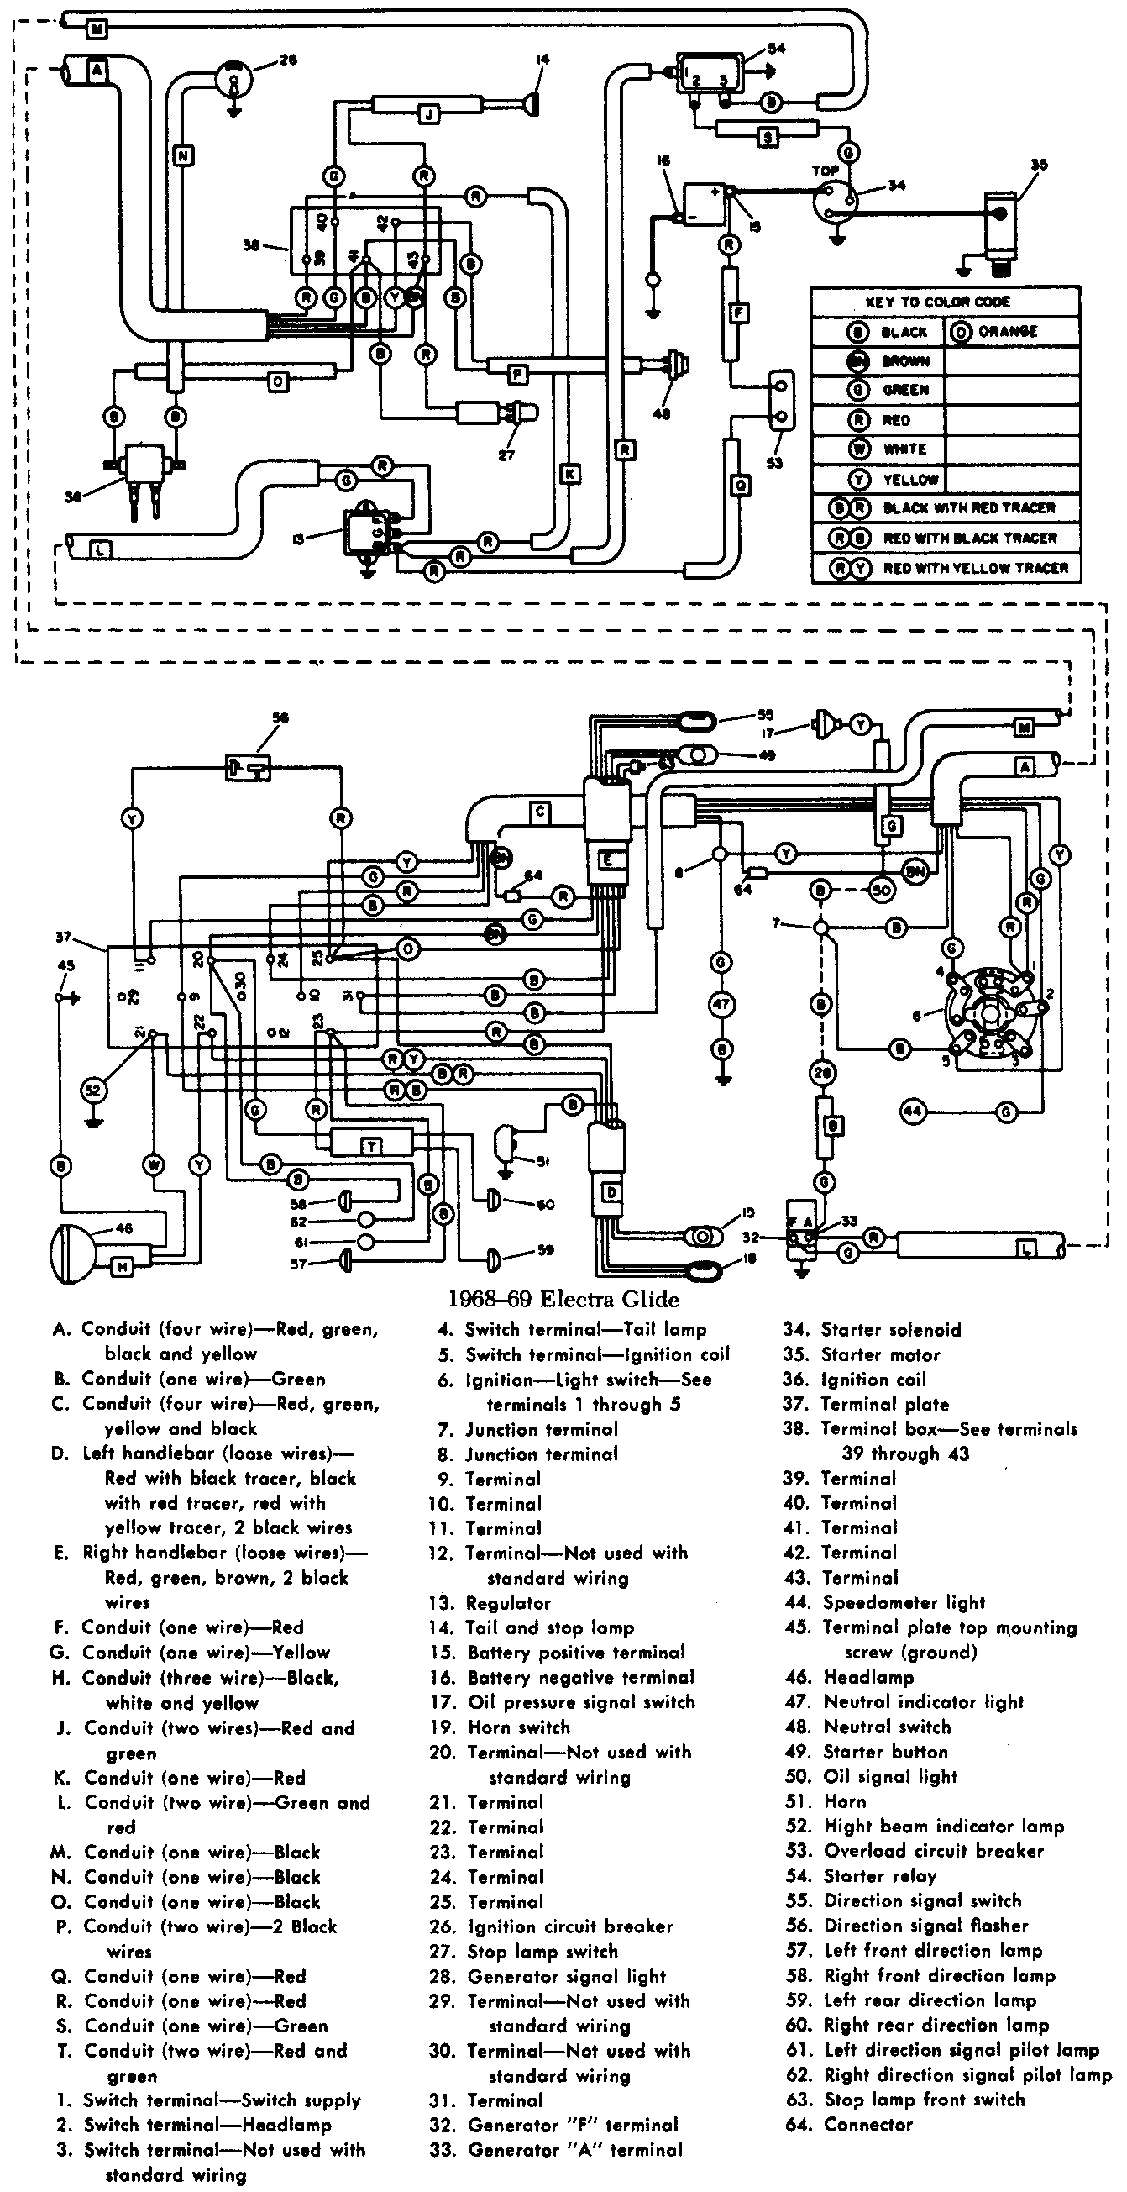 [TVPR_3874]  🏆 [DIAGRAM in Pictures Database] 1986 Flht Wiring Diagram Just Download or  Read Wiring Diagram - ZPMOBILE.GBI-SOLUTIONS.COM | 1986 Flht Wiring Diagram |  | Complete Diagram Picture Database - GBi-Solutions